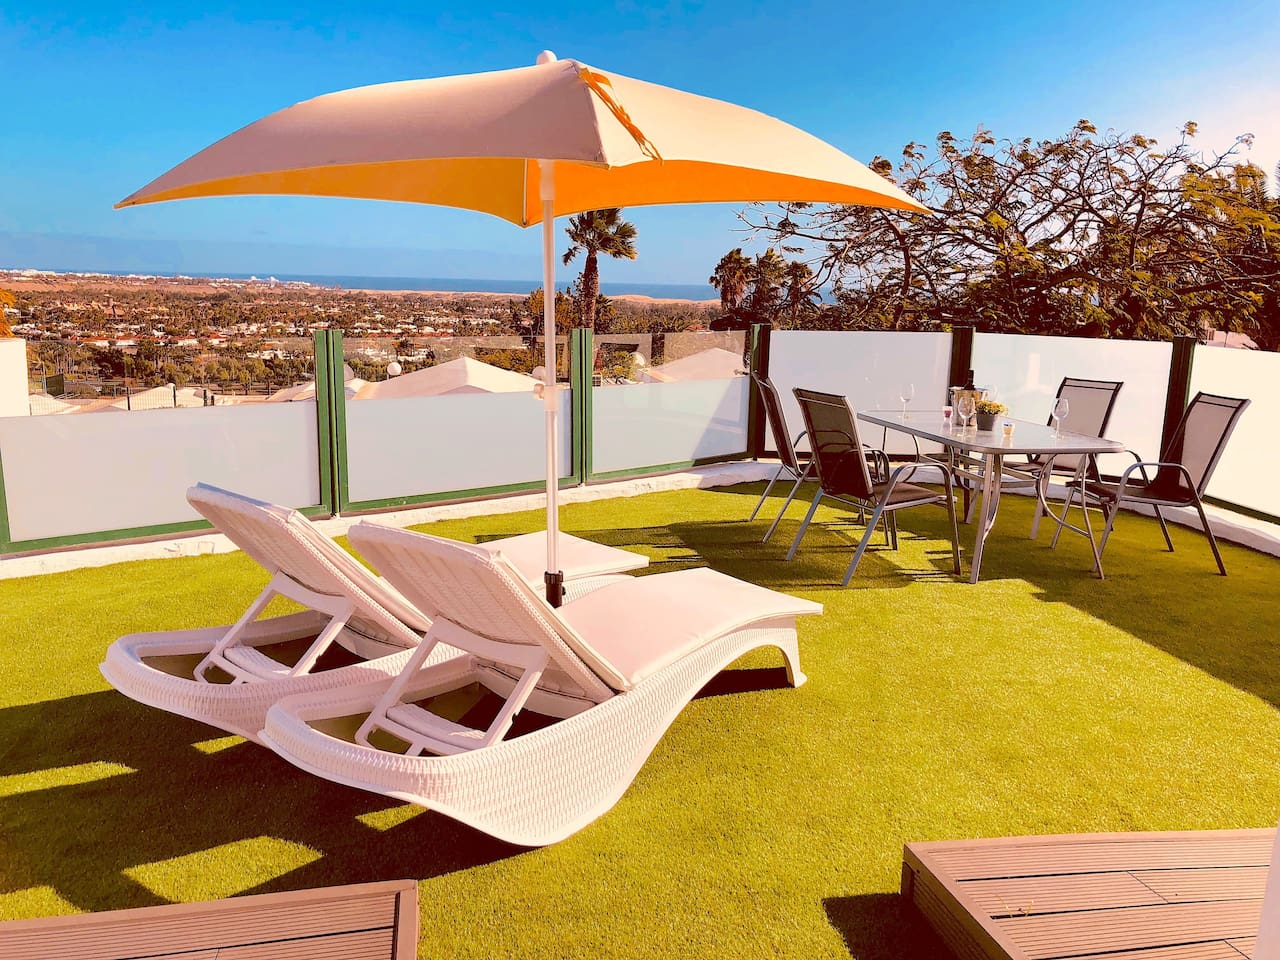 feeling the sun with the best sea views in a private garden, like paradise?